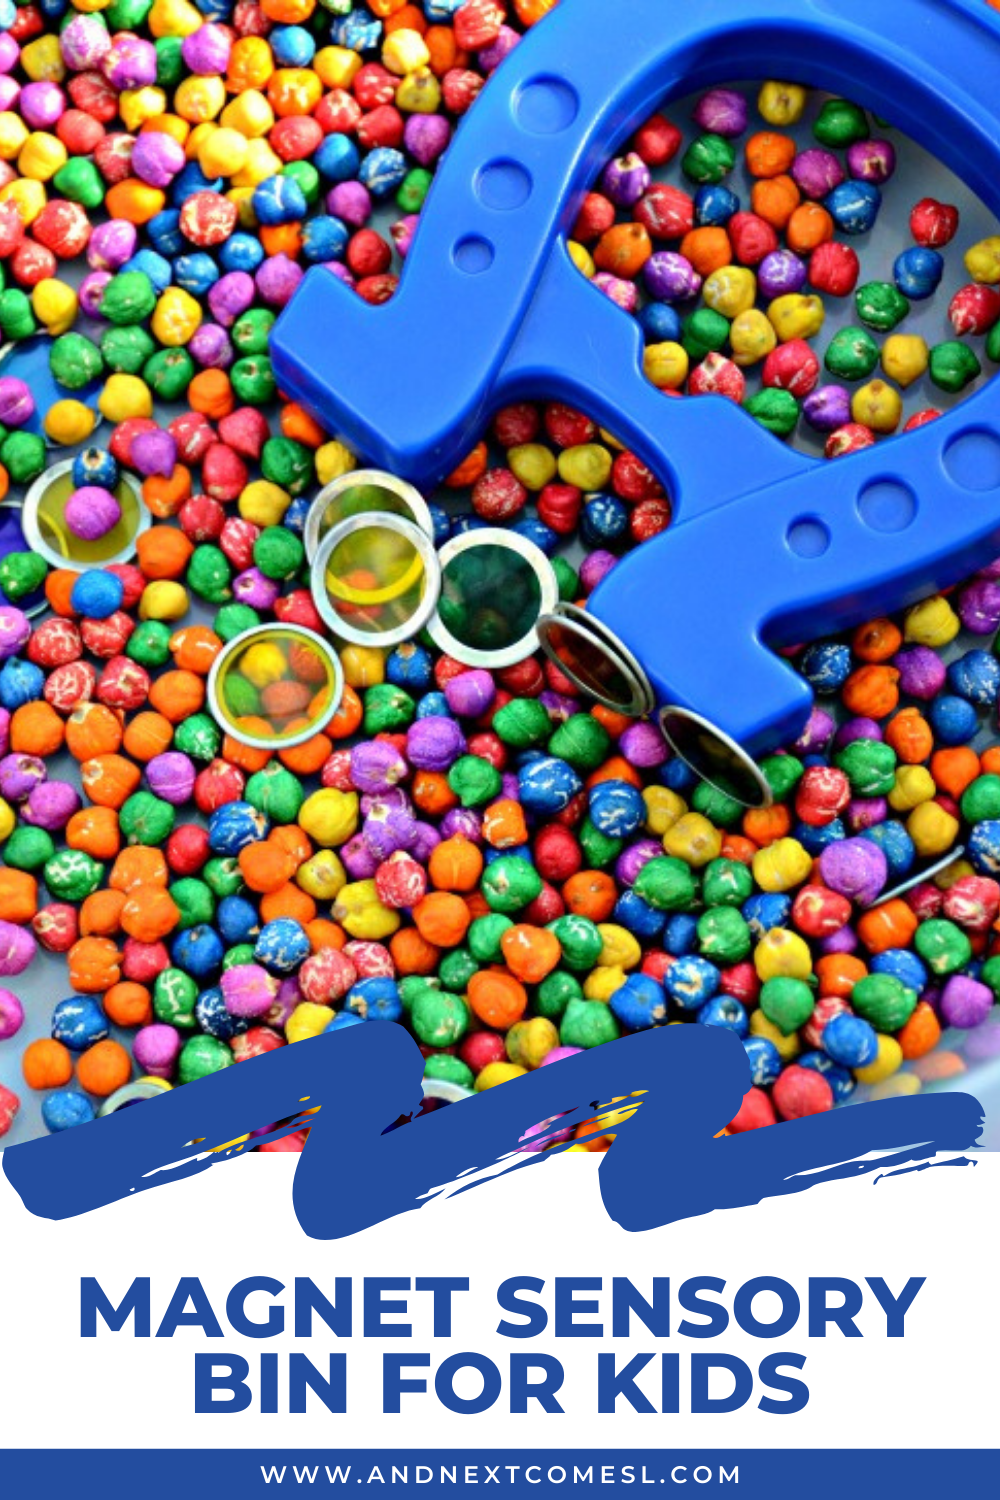 Colorful magnet sensory bin with rainbow dyed chickpeas - a fun activity for exploring magnets for toddlers and preschool kids